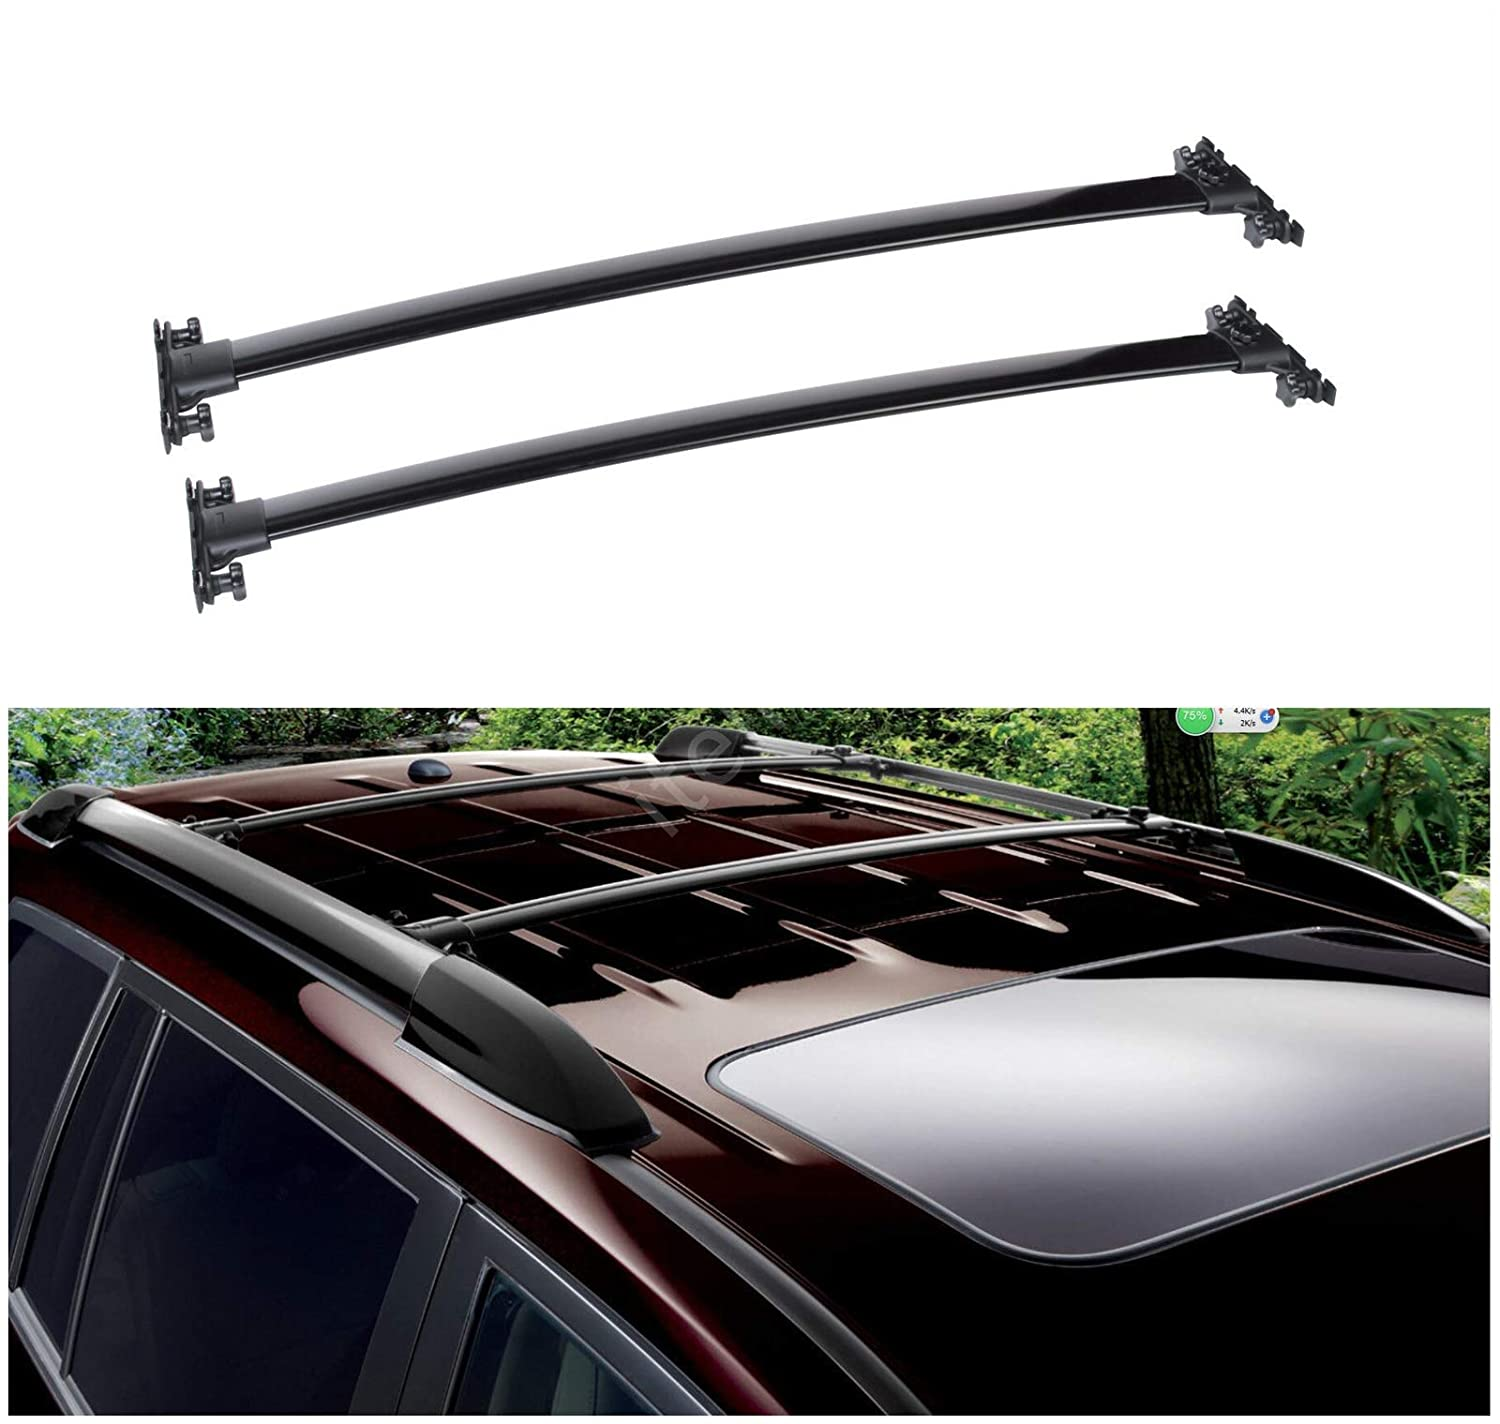 itelleti 2pcs New Factory Style Black Aircraft Aluminum Roof Rack Cross Bars Cargo Carriers Brackets Mounting Hardwares Fit 08-13 Toyota Highlander Equipped With OE Roof Side Rails